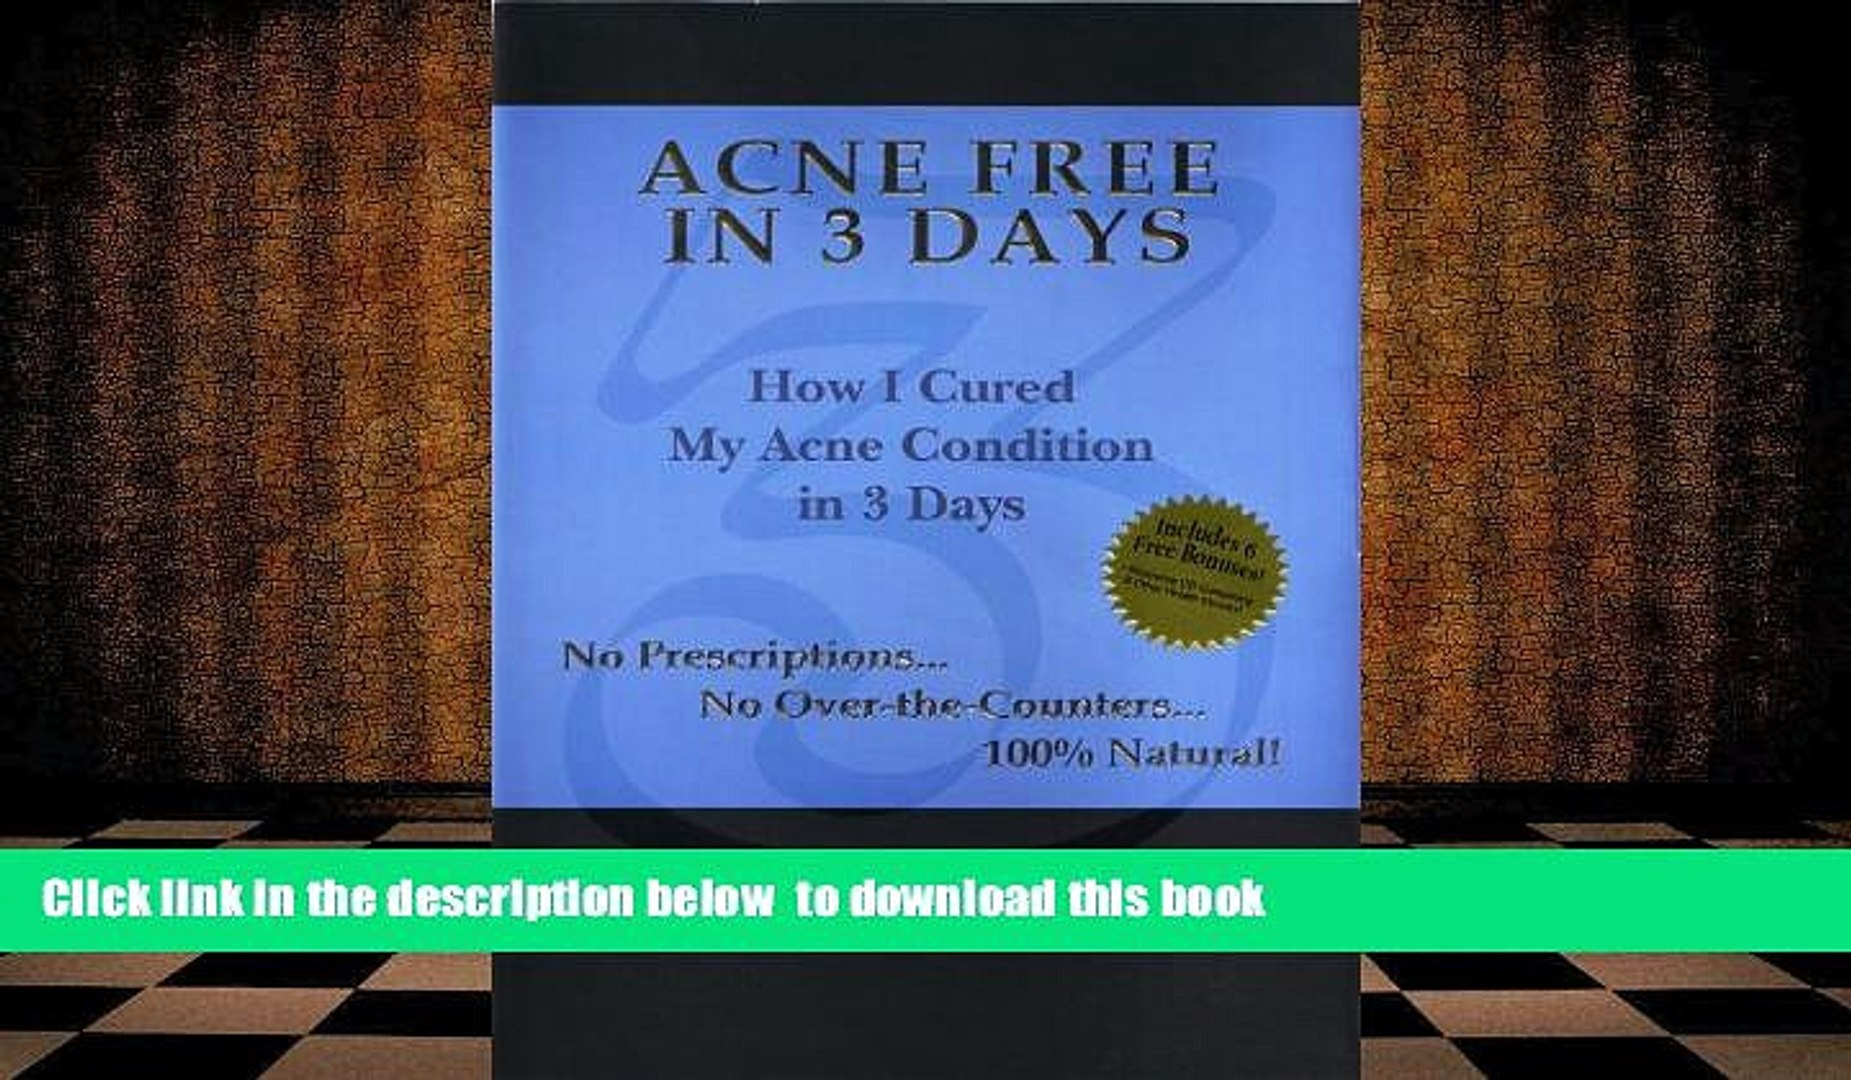 [Download] Acne Free in 3 Days: How I Cured My Acne Condition in 3 Days  Chris Gibson For Ipad